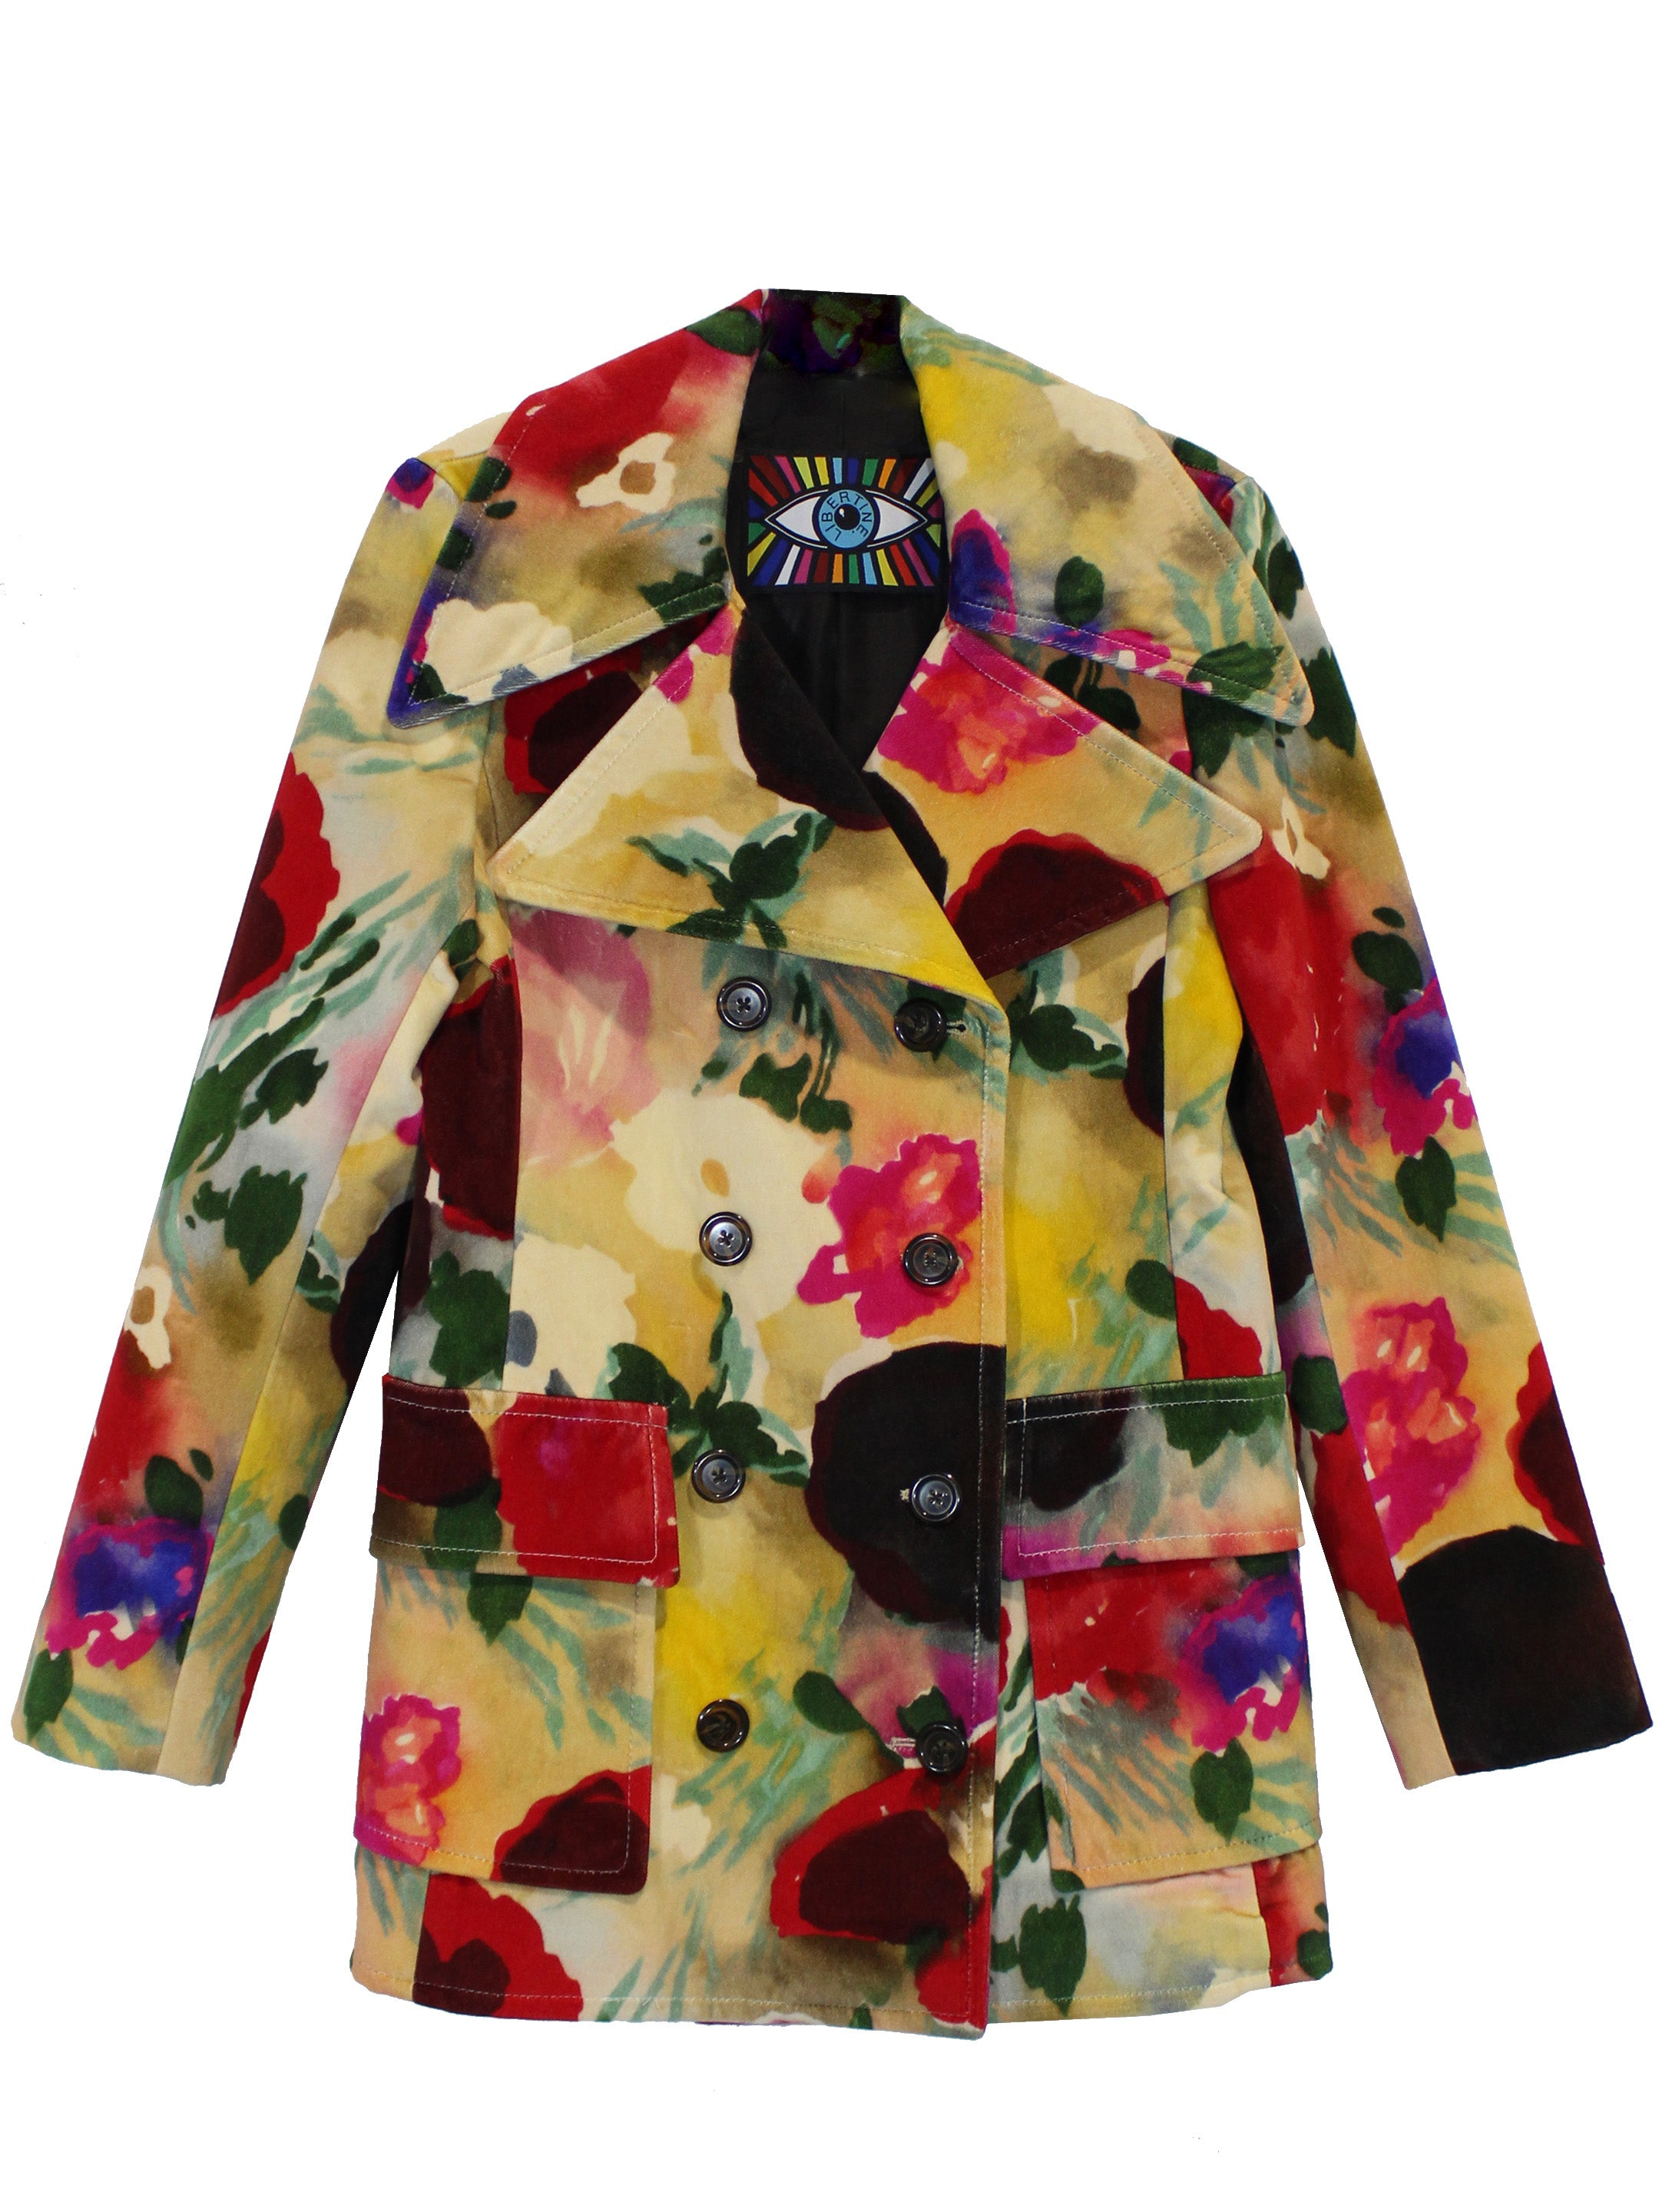 """BLOOMSBURY GROUP"" PAINTED FLOWERS PEACOAT WITH CRYSTALS - Women's Jackets & Coats - Libertine"